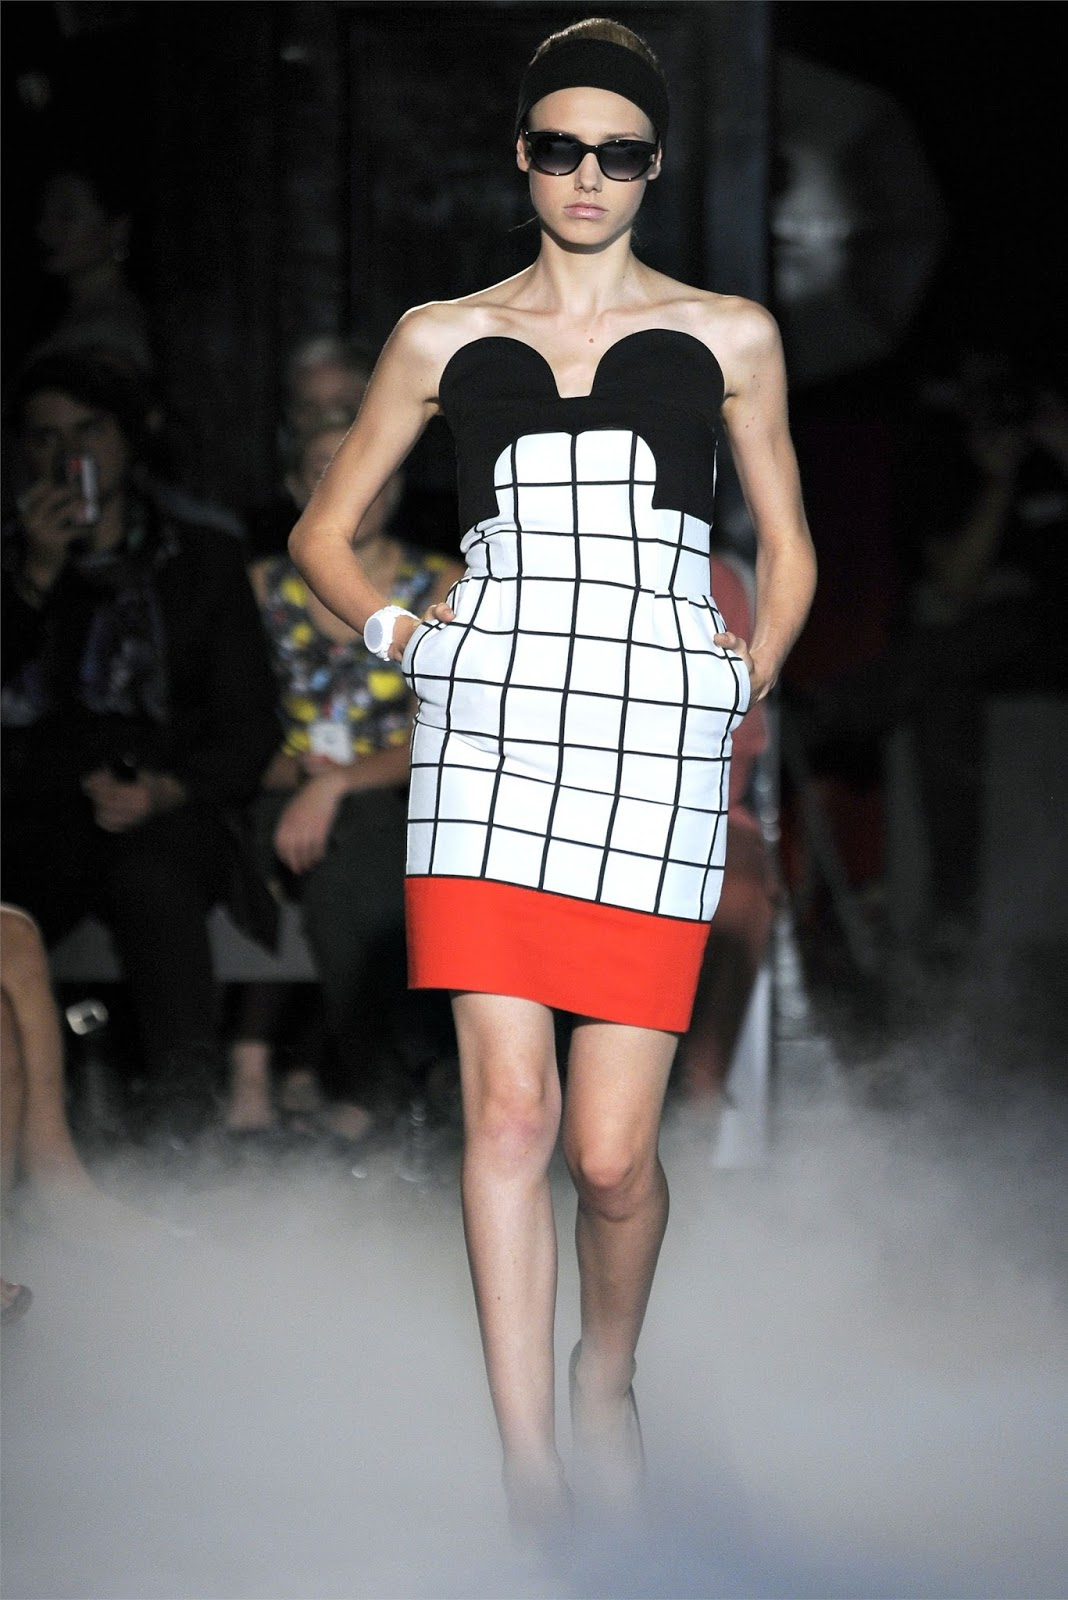 171cae43abc6 While surfing on internet this afternoon I found these inspiring photos  from fashion designer Jean-Charles de Castelbajac for the season S S 2012  RTW.